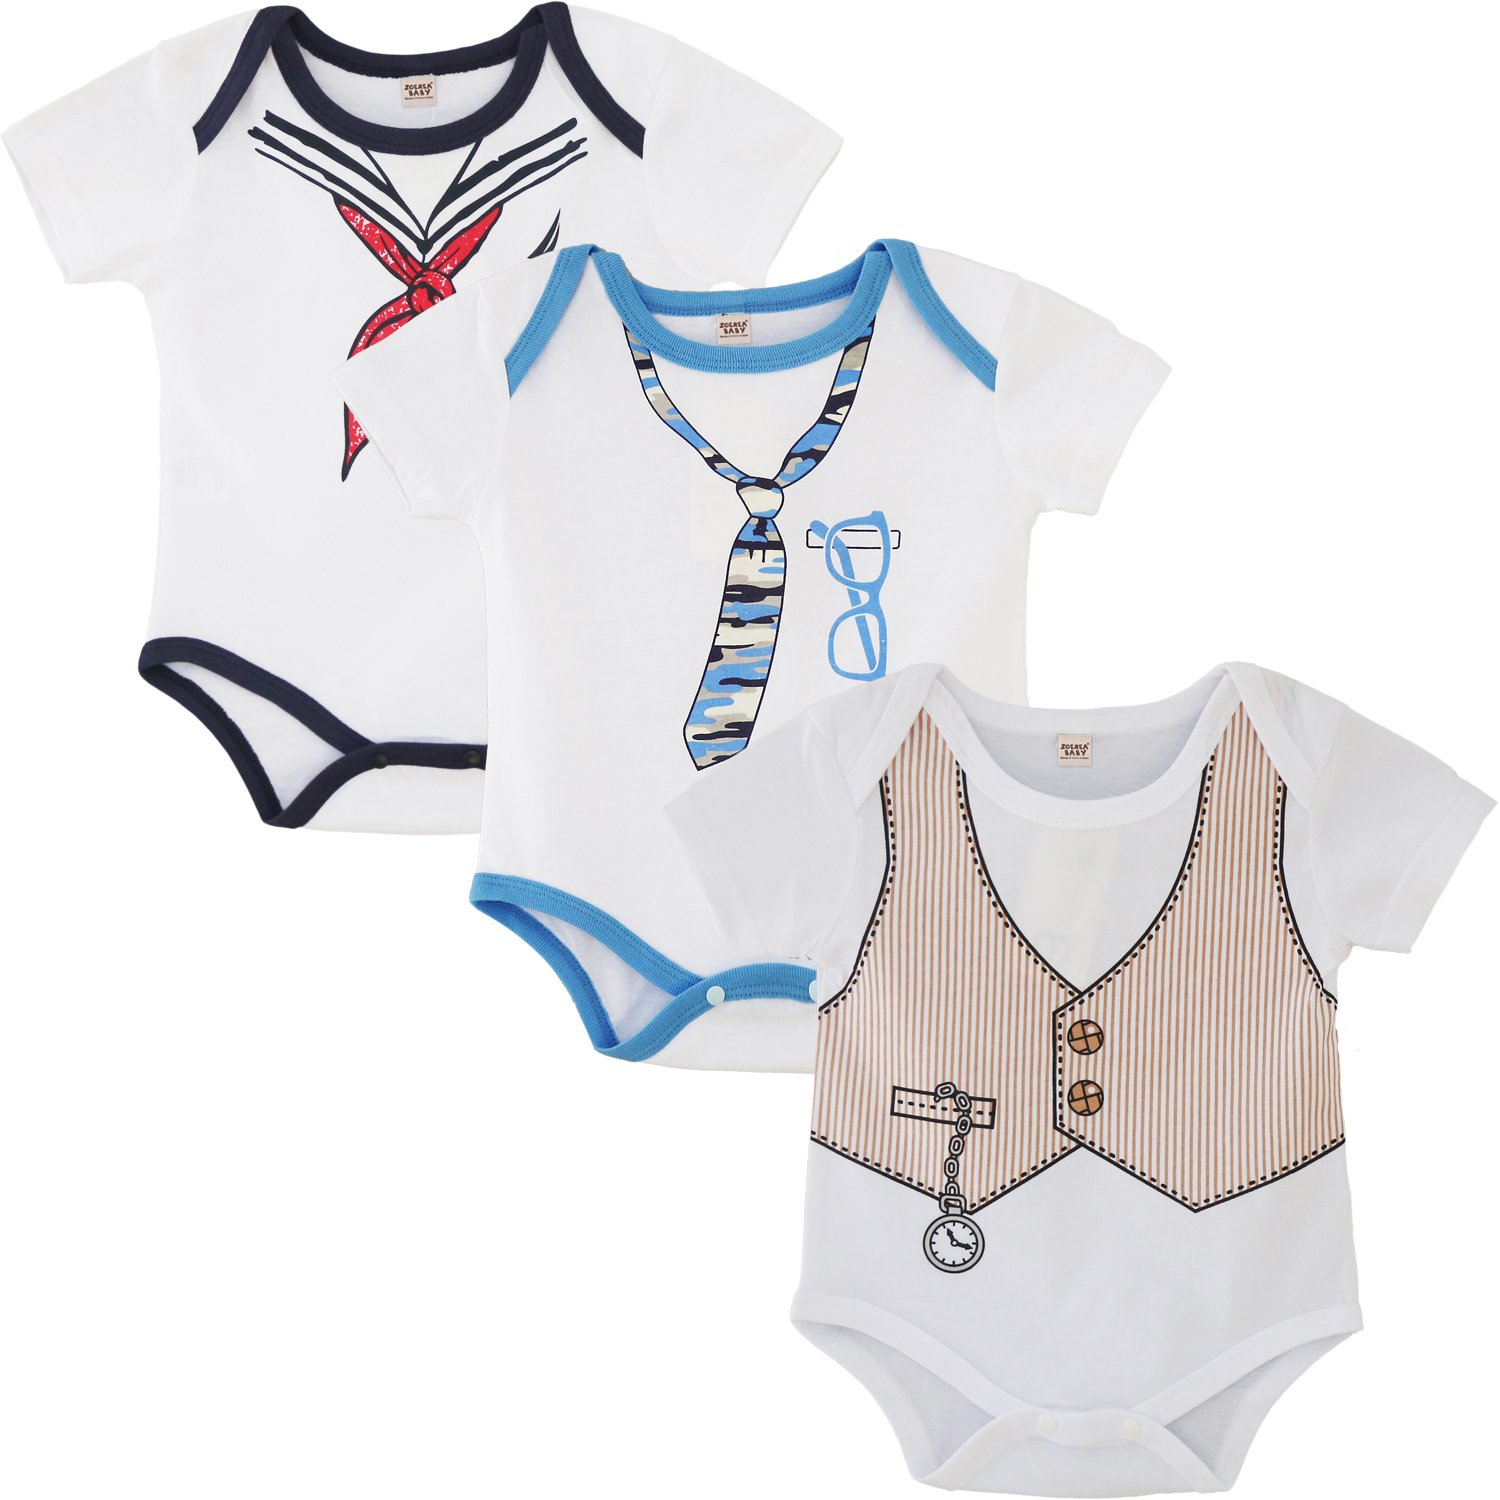 ZOEREA 3pcs Pack Baby Boy Girl Romper Infant Clothes YS2499